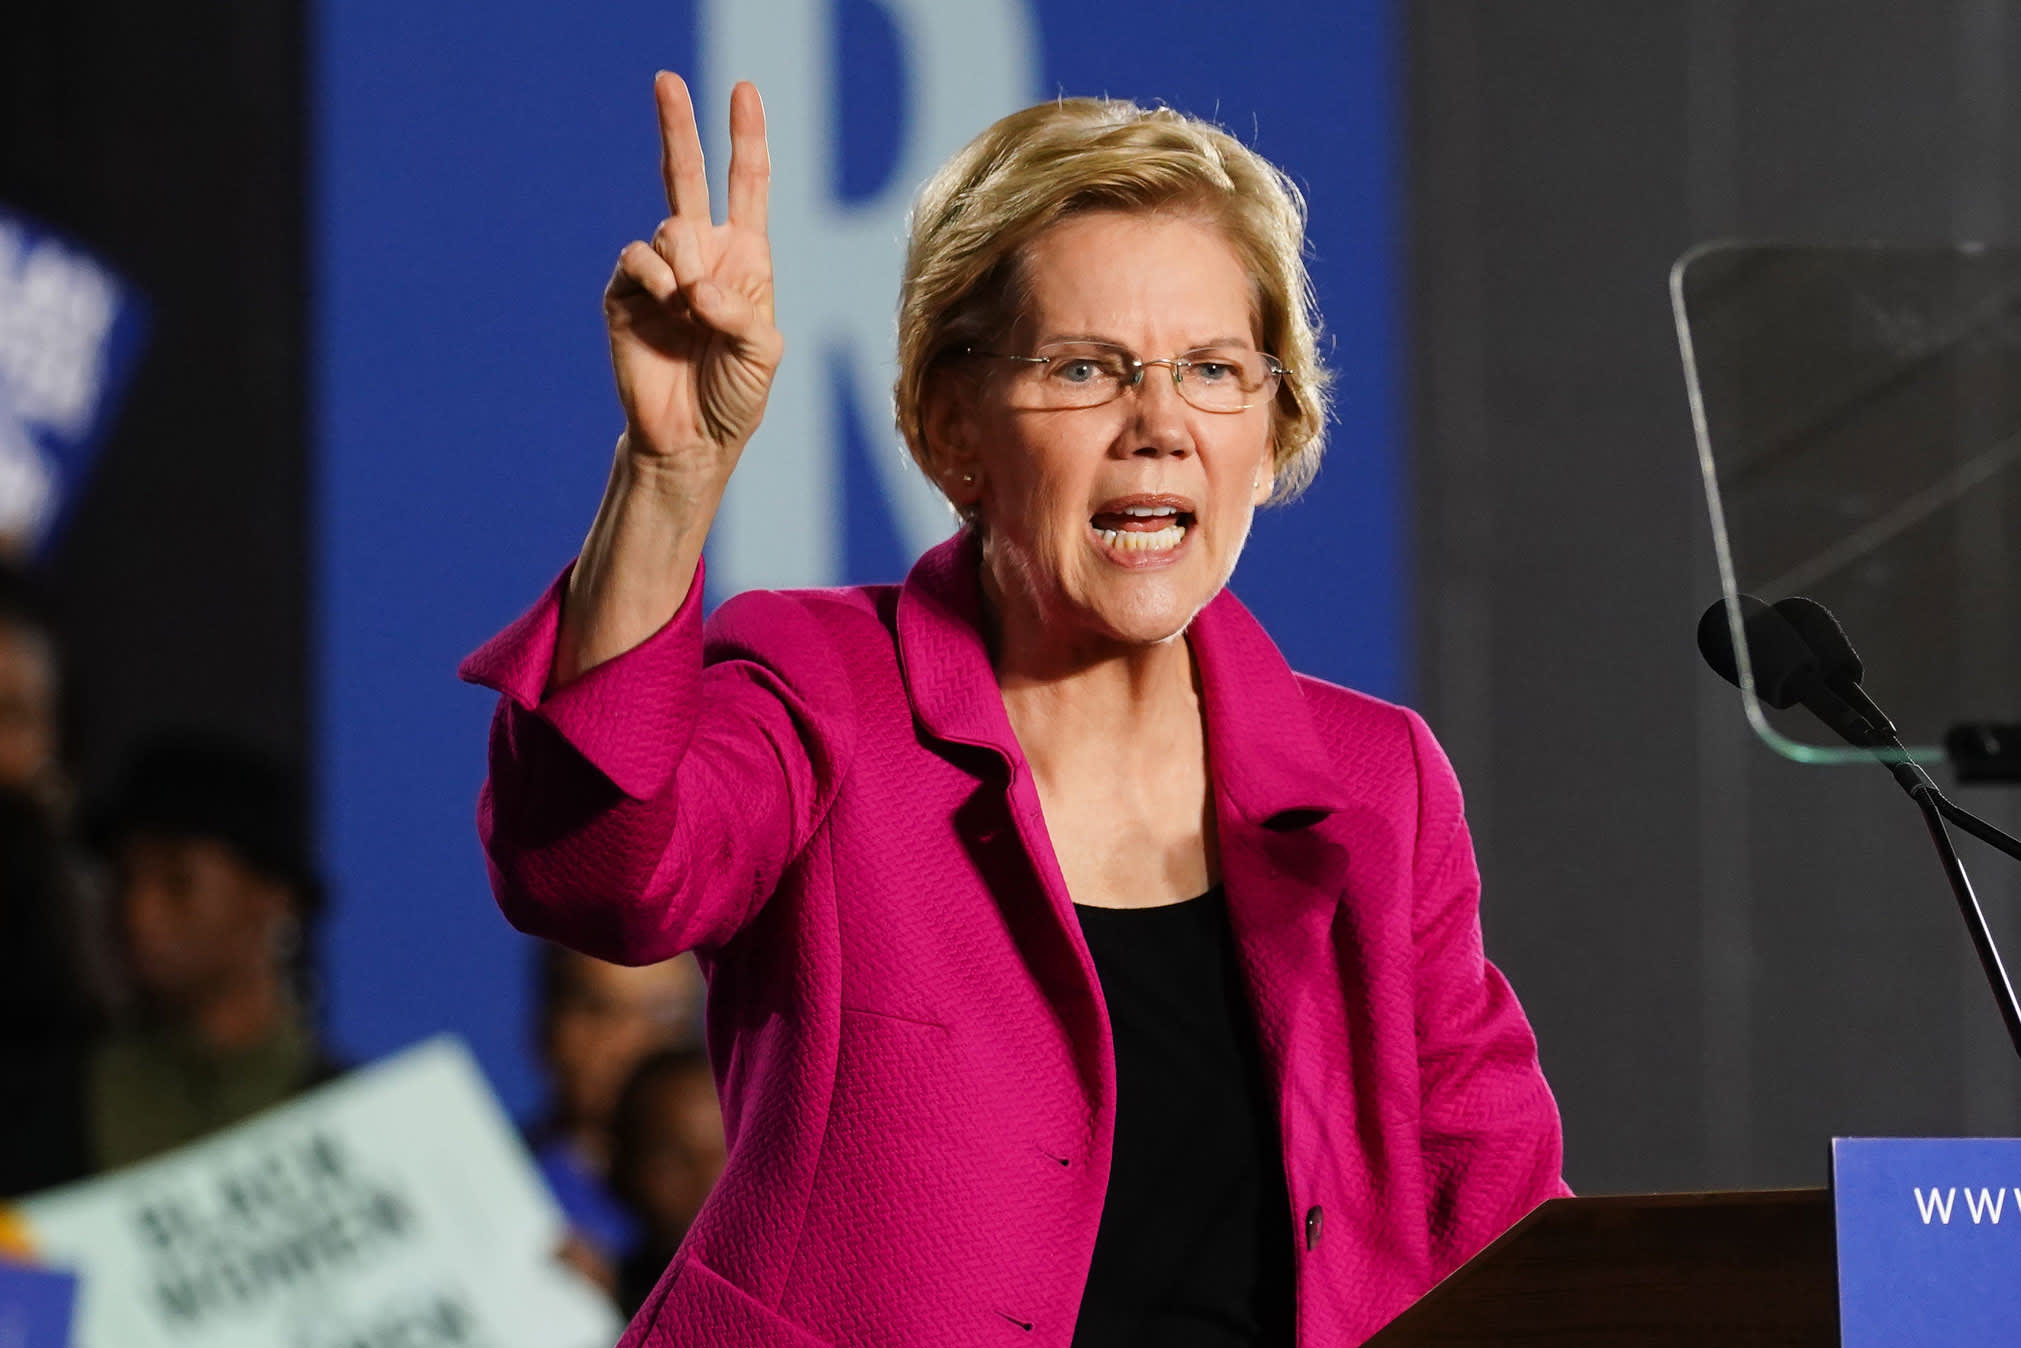 Elizabeth Warren targets Buttigieg and Biden as she seeks to regain momentum in Iowa